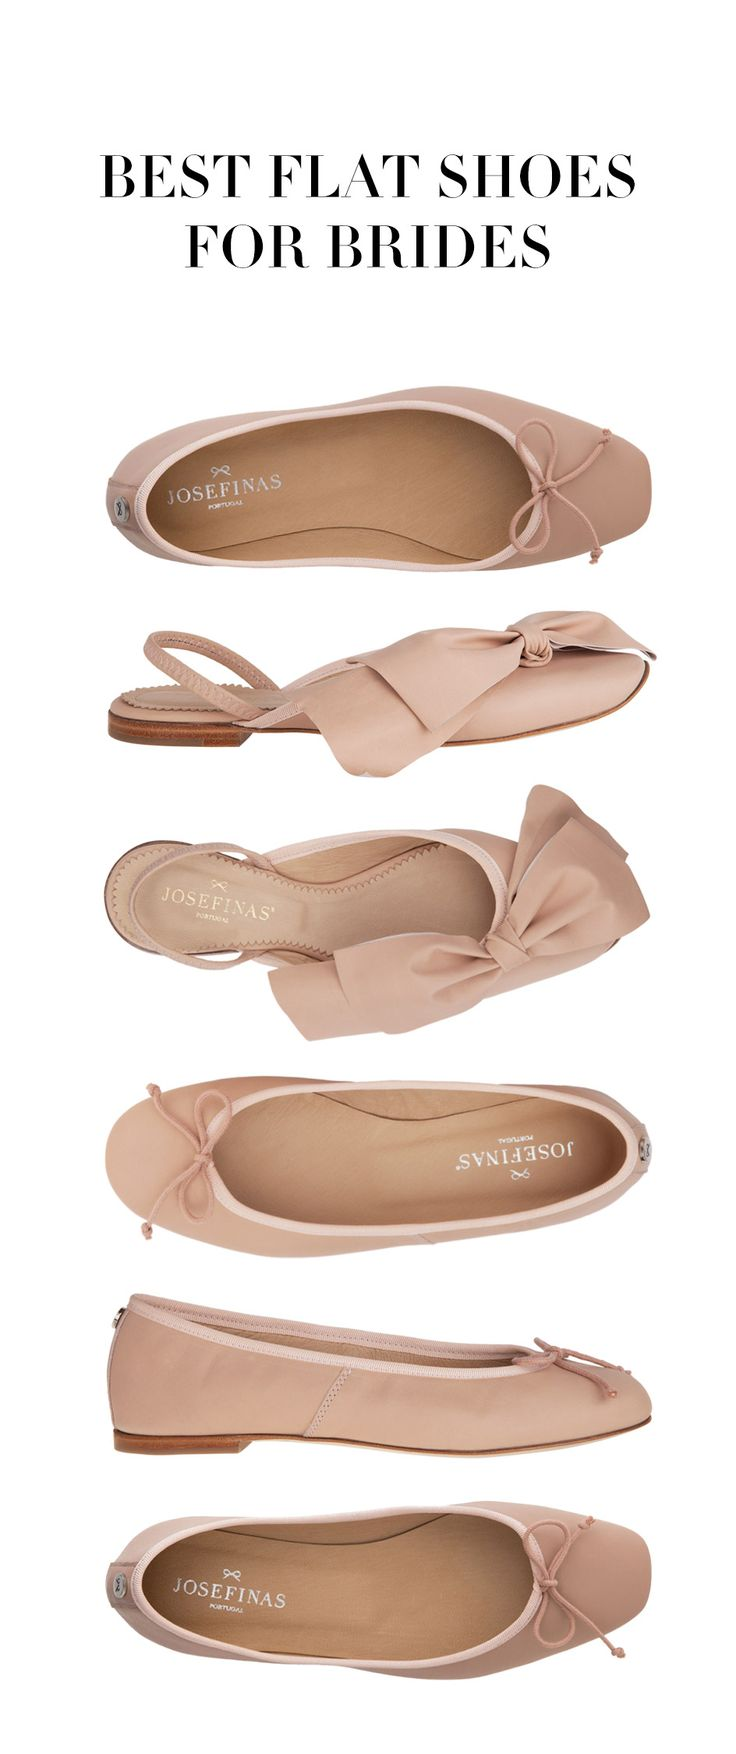 You don't need high heels to feel pretty on your wedding day ✨  Be the perfect bride with Josefinas' ballet flats! www.josefinas.com/bride.  #weddings #weddingdress #weddinginspiration #balletflats #bride #shoes #bridal